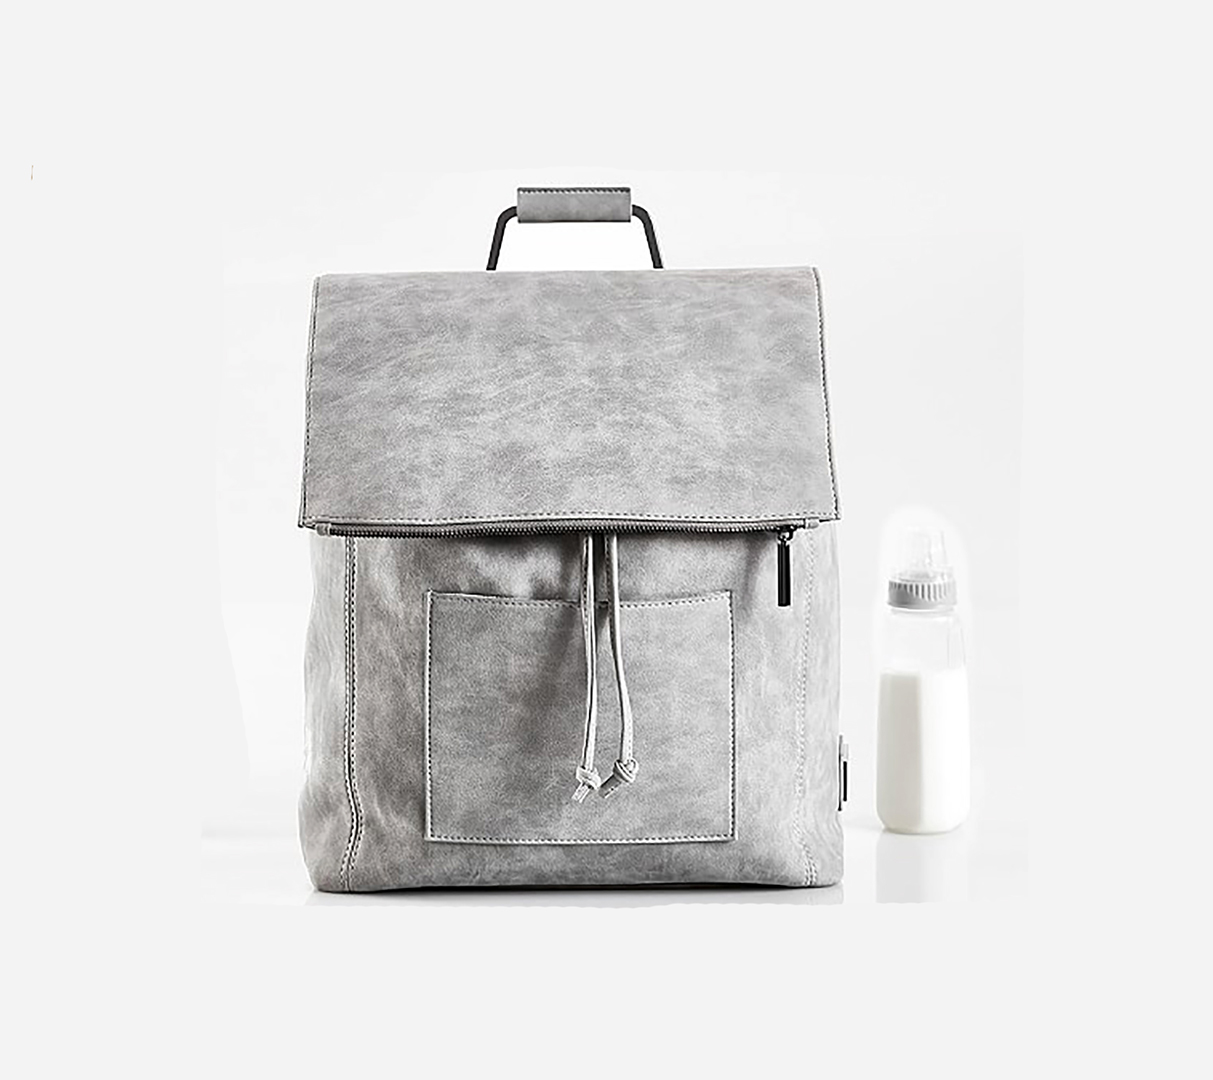 8 Backpack Diaper Bags We Love